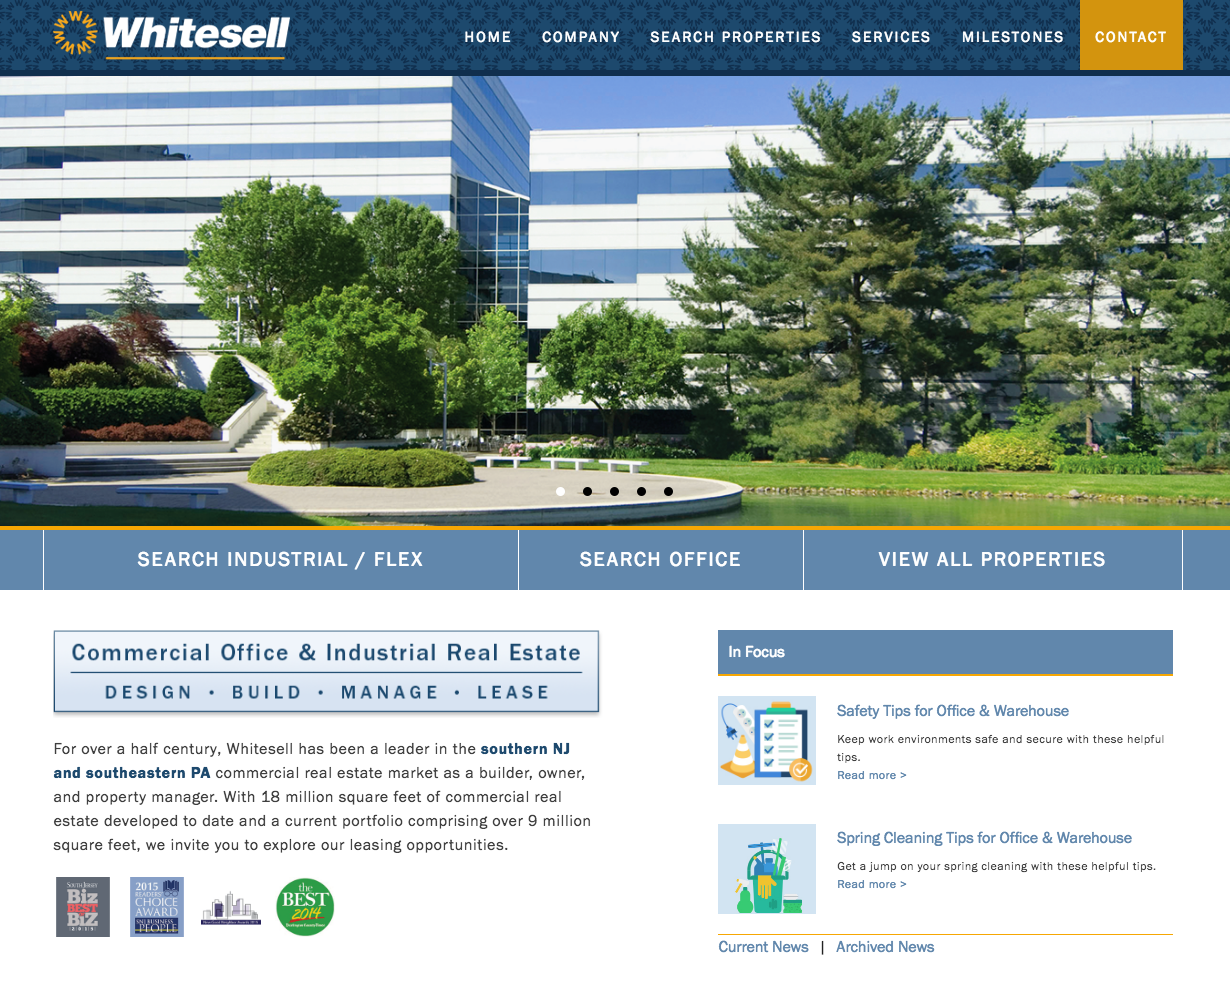 Whitesell Homepage